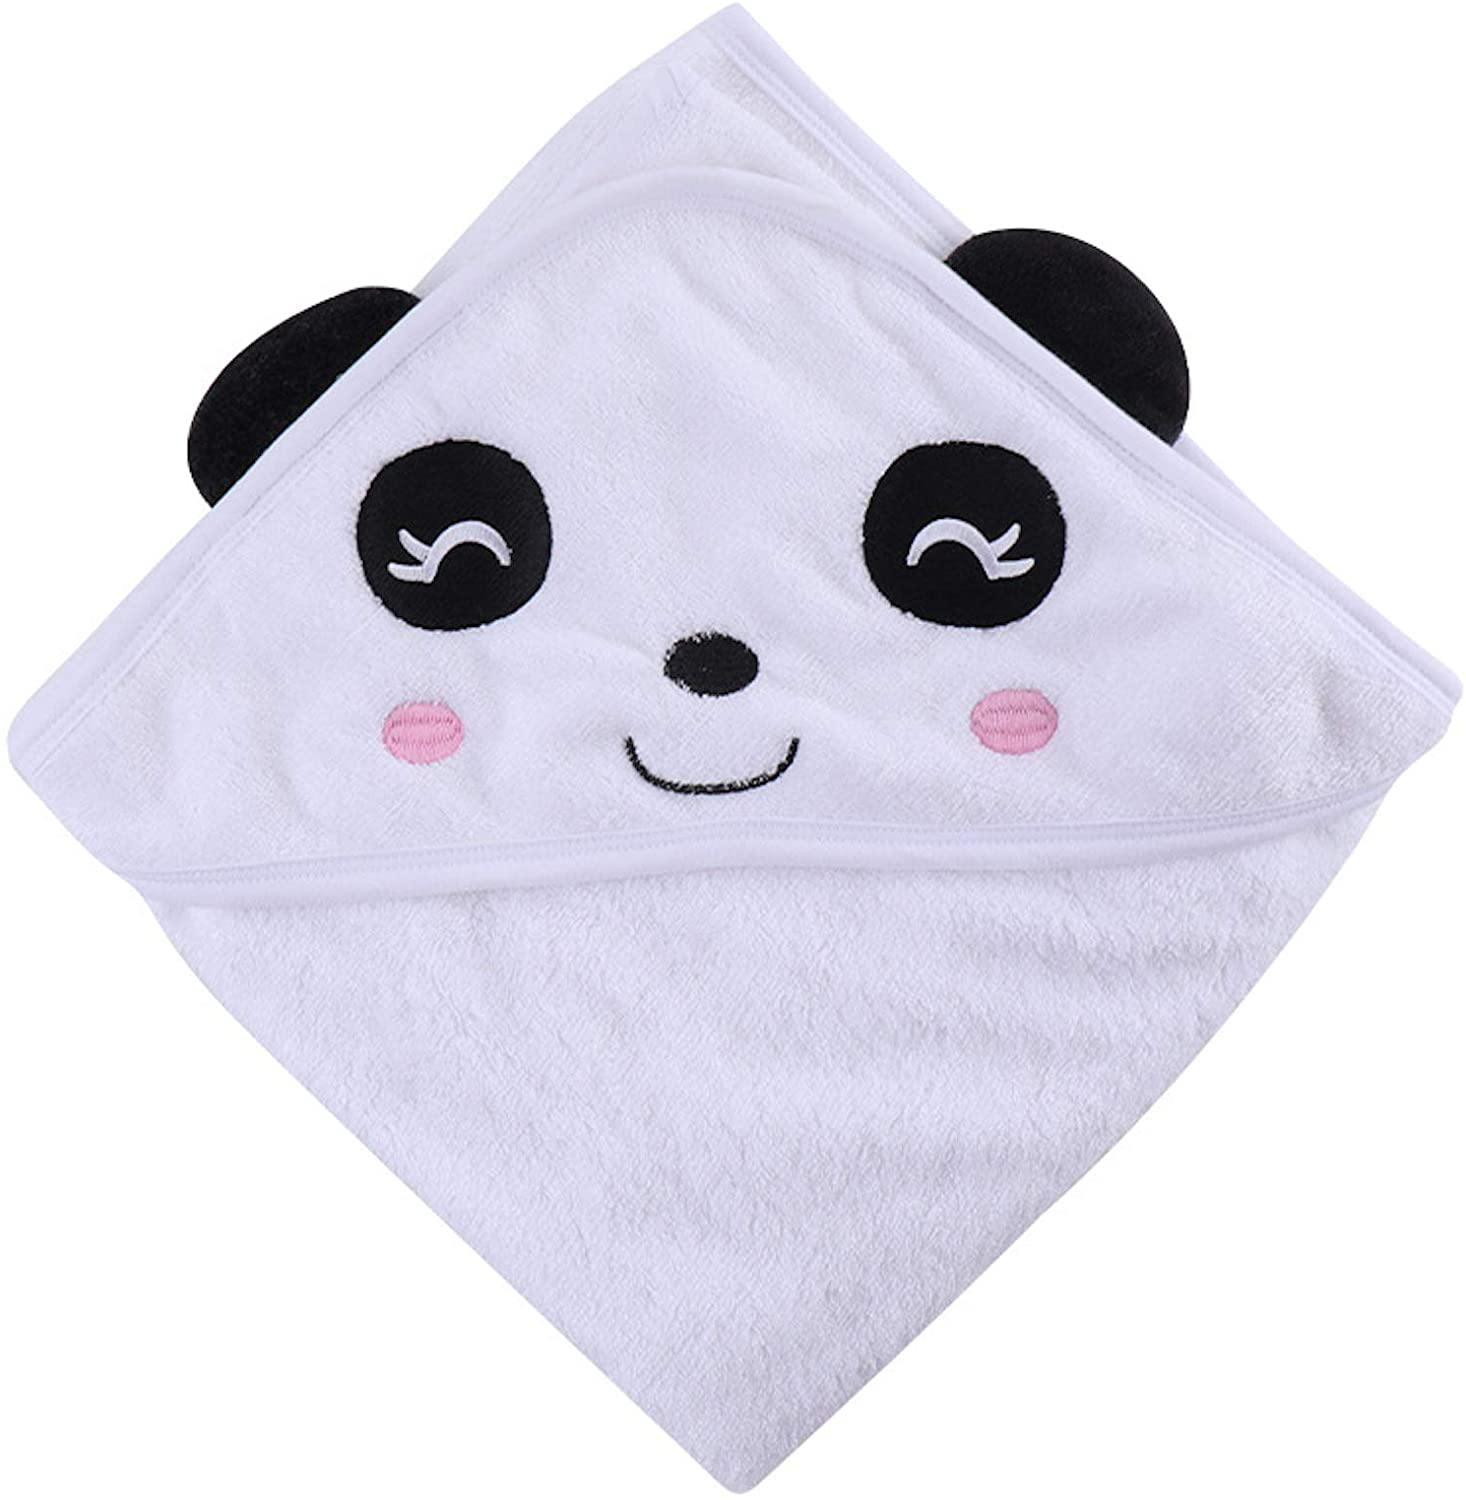 ELONGLIN HOODED BATH TOWELS FOR BABY TODDLERS EXTRA SOFT BAMBOO FIBER BABYTOWEL